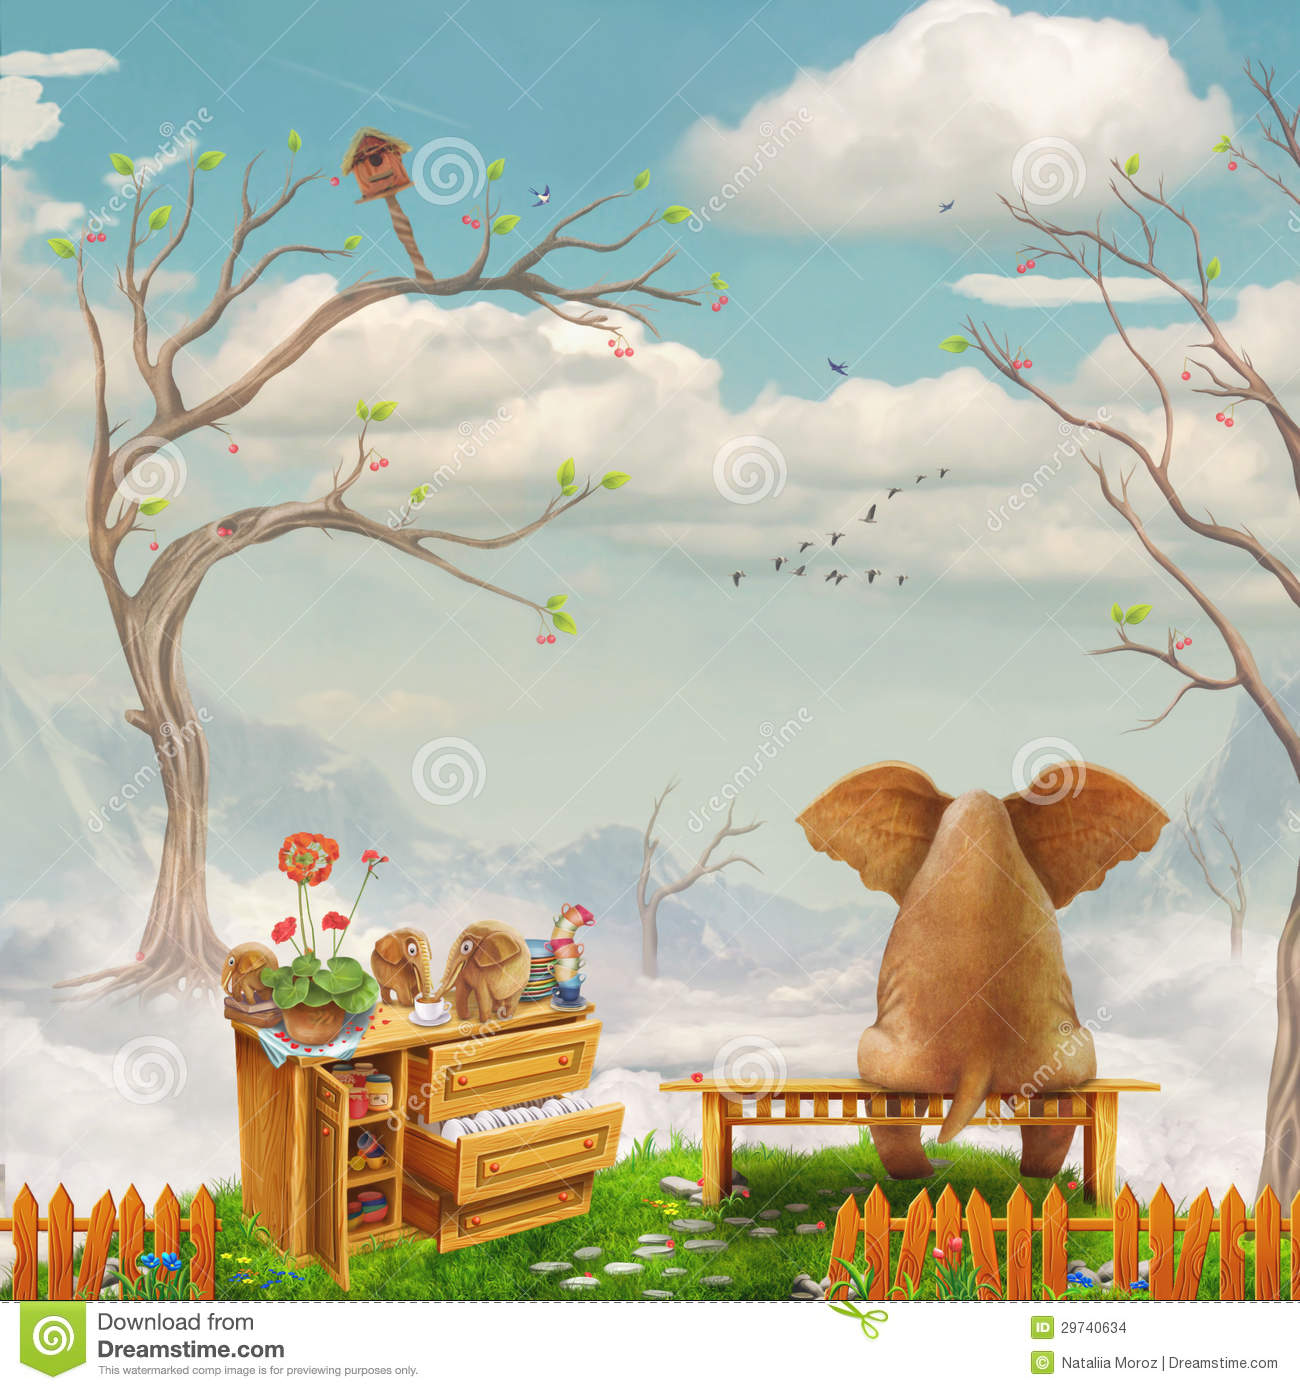 Elephant on a bench in the sky